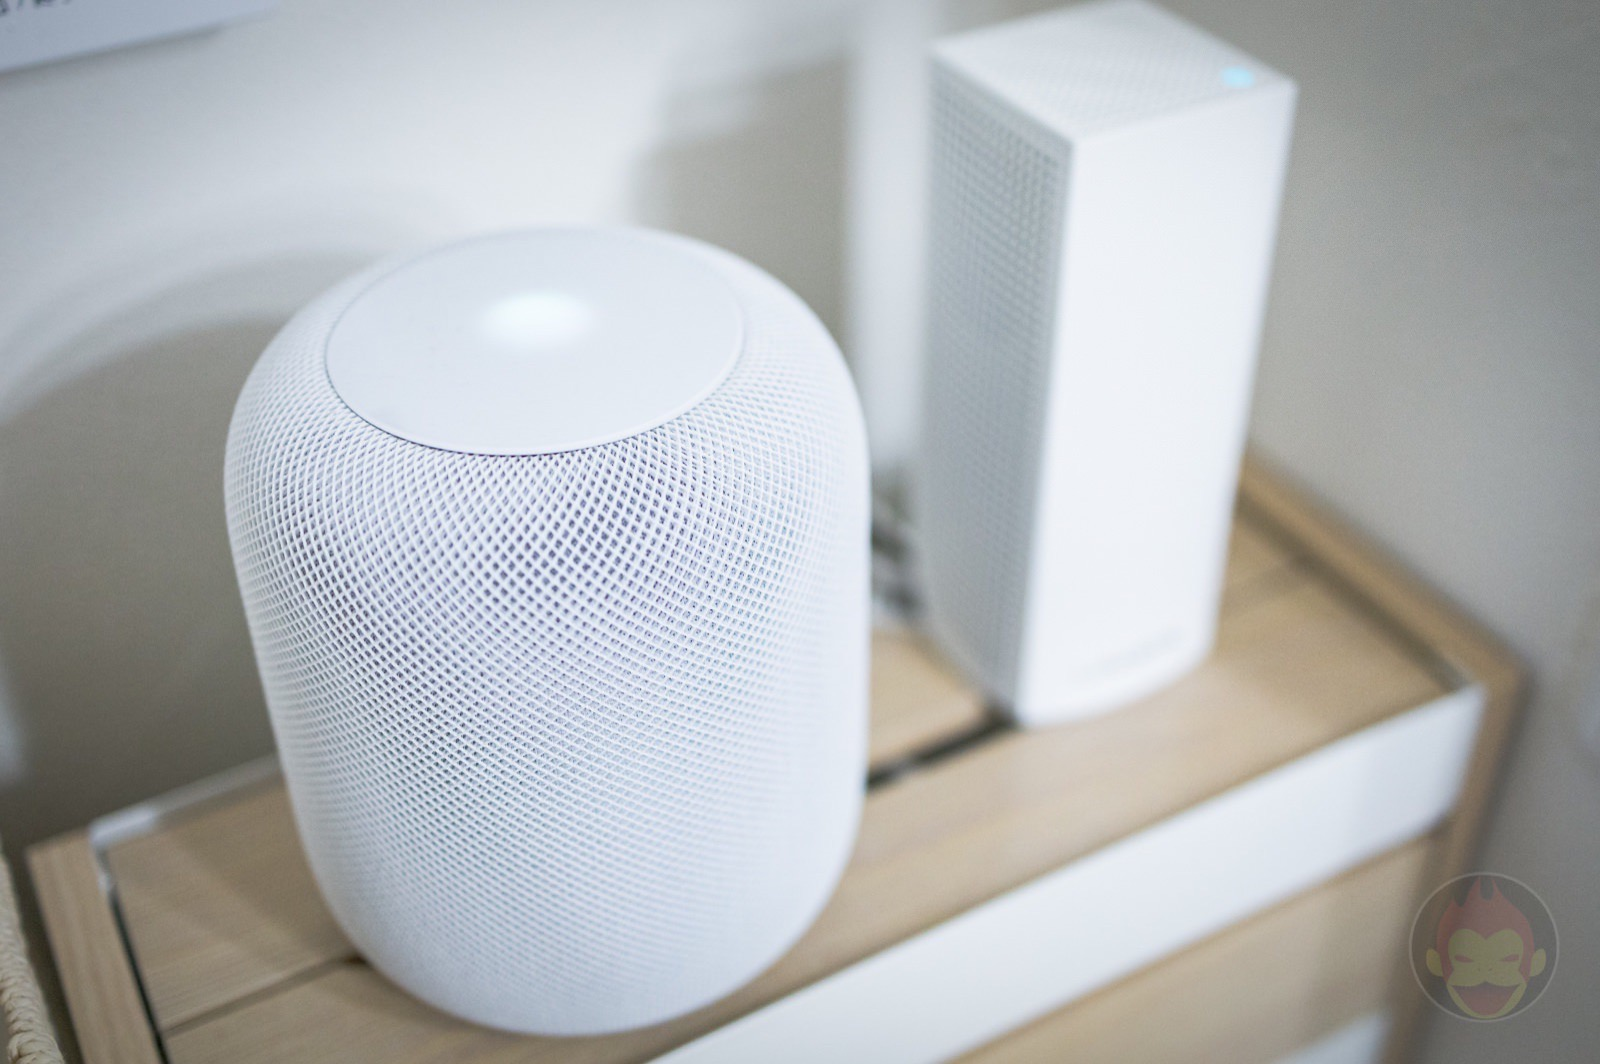 GoriMe Homepod with Linksys Velop 01